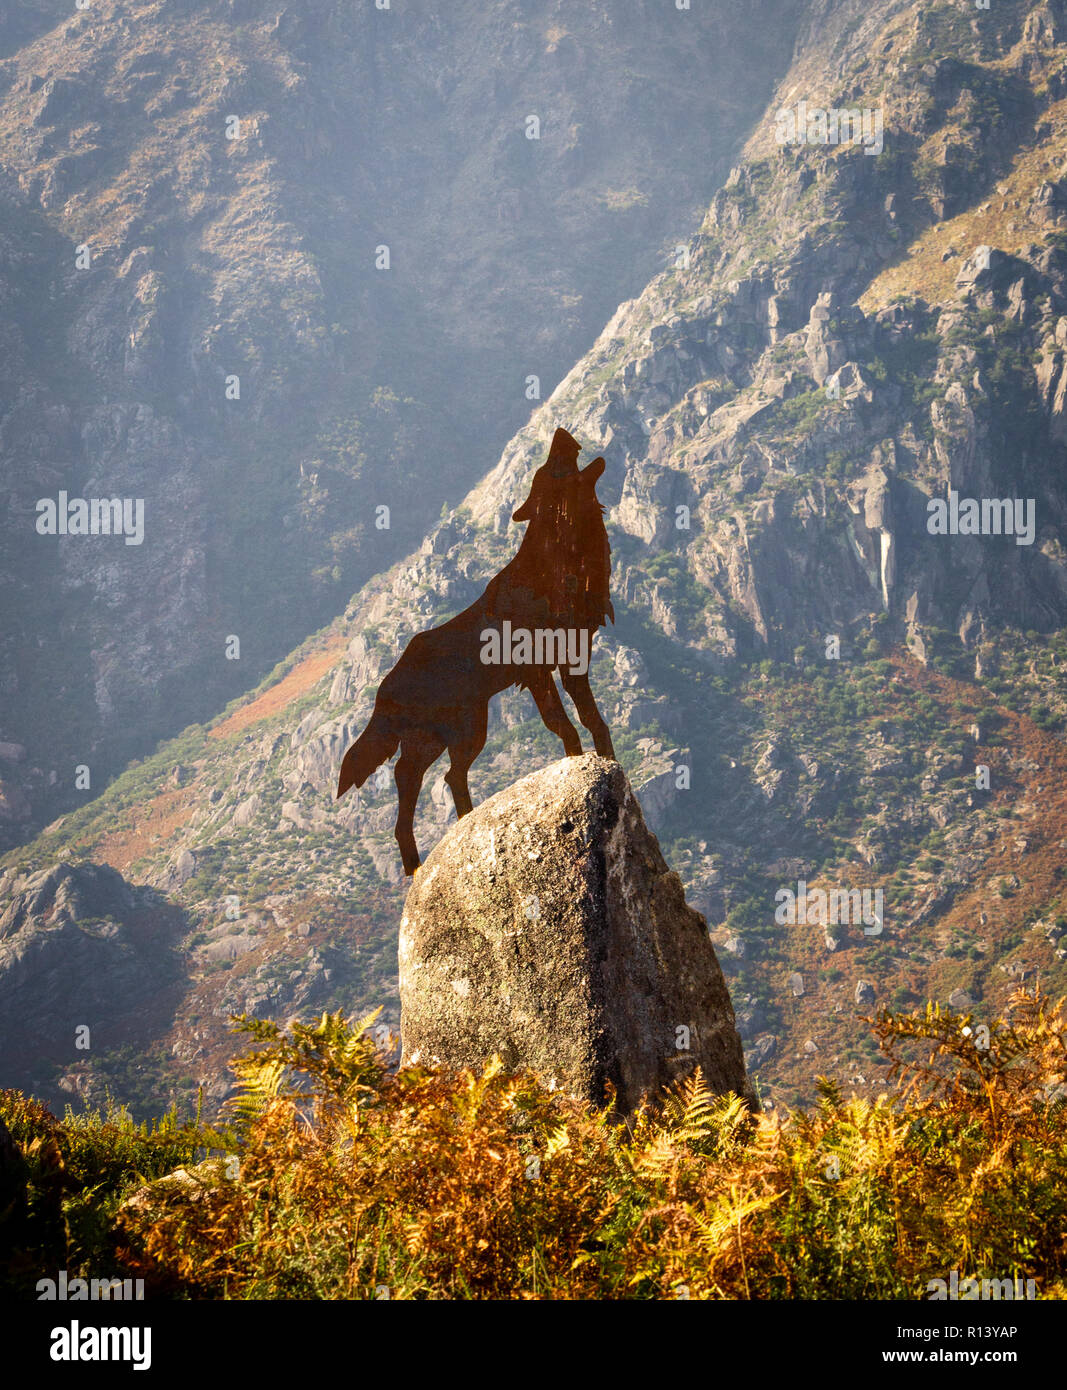 Brass Figure of a wolf howling on top of a rock. Autumn leaves. - Stock Image